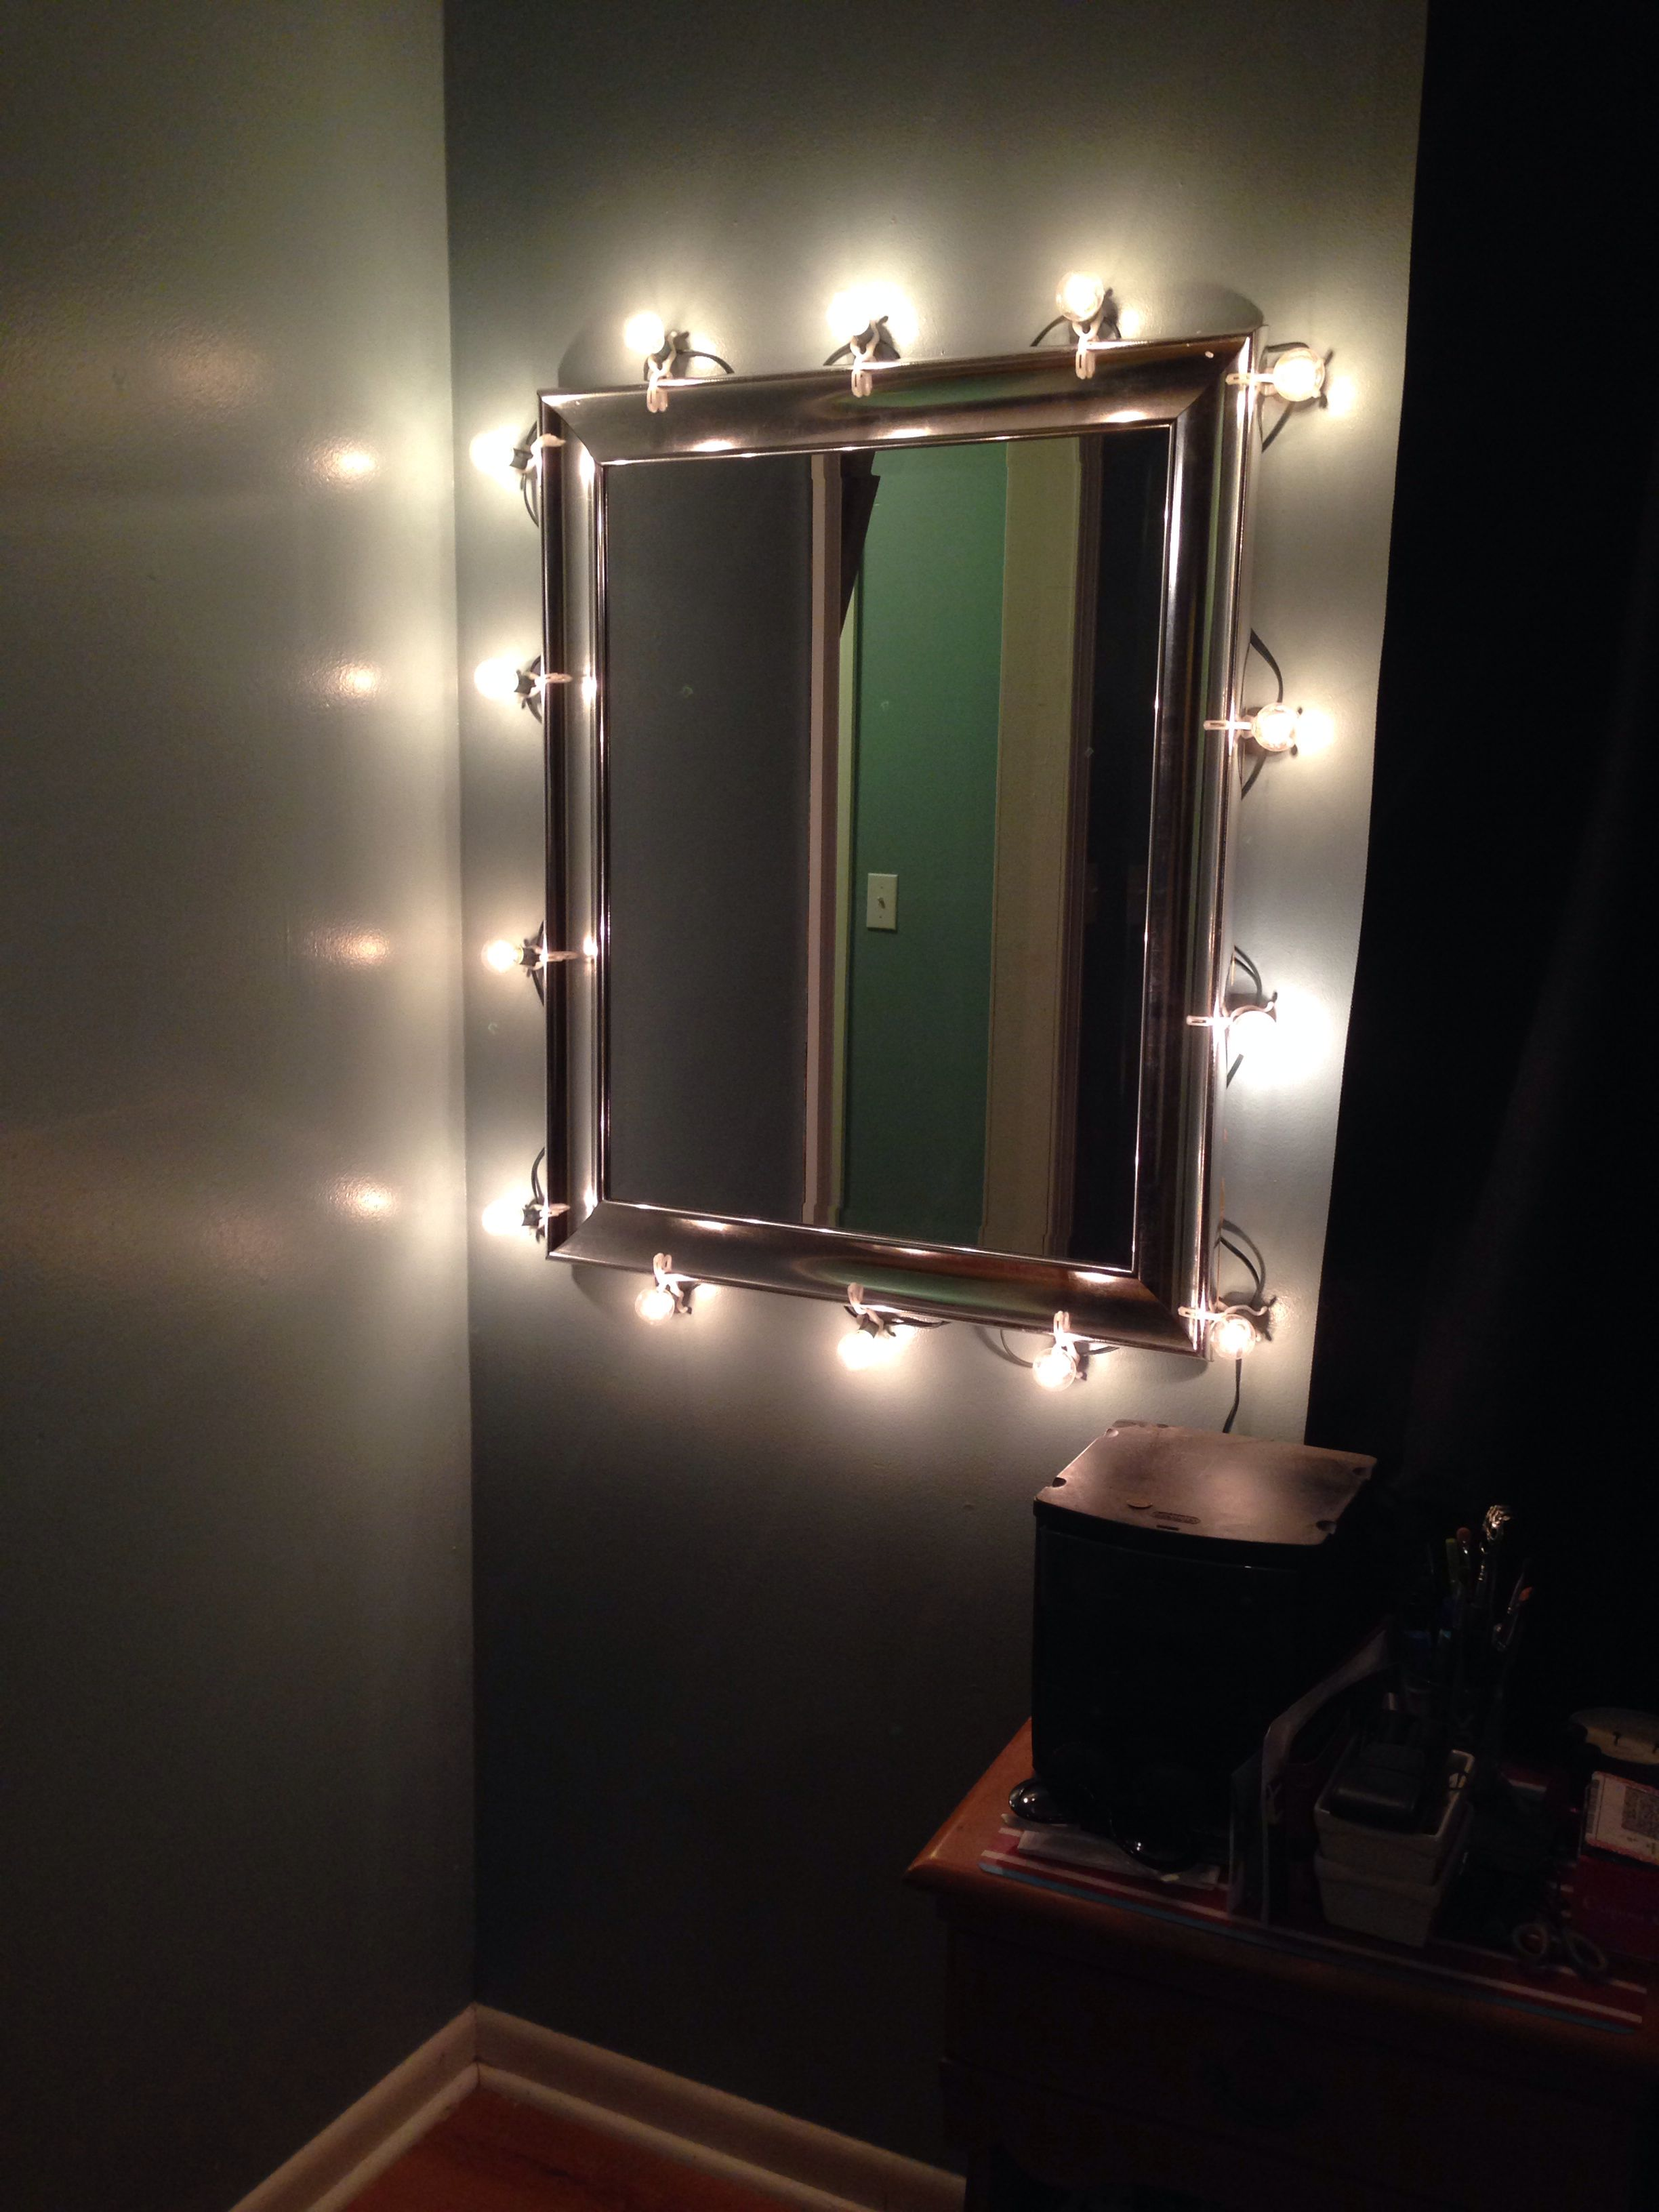 Diy Makeup Mirror With Christmas Lights Silver Mirror C7 Bulbs